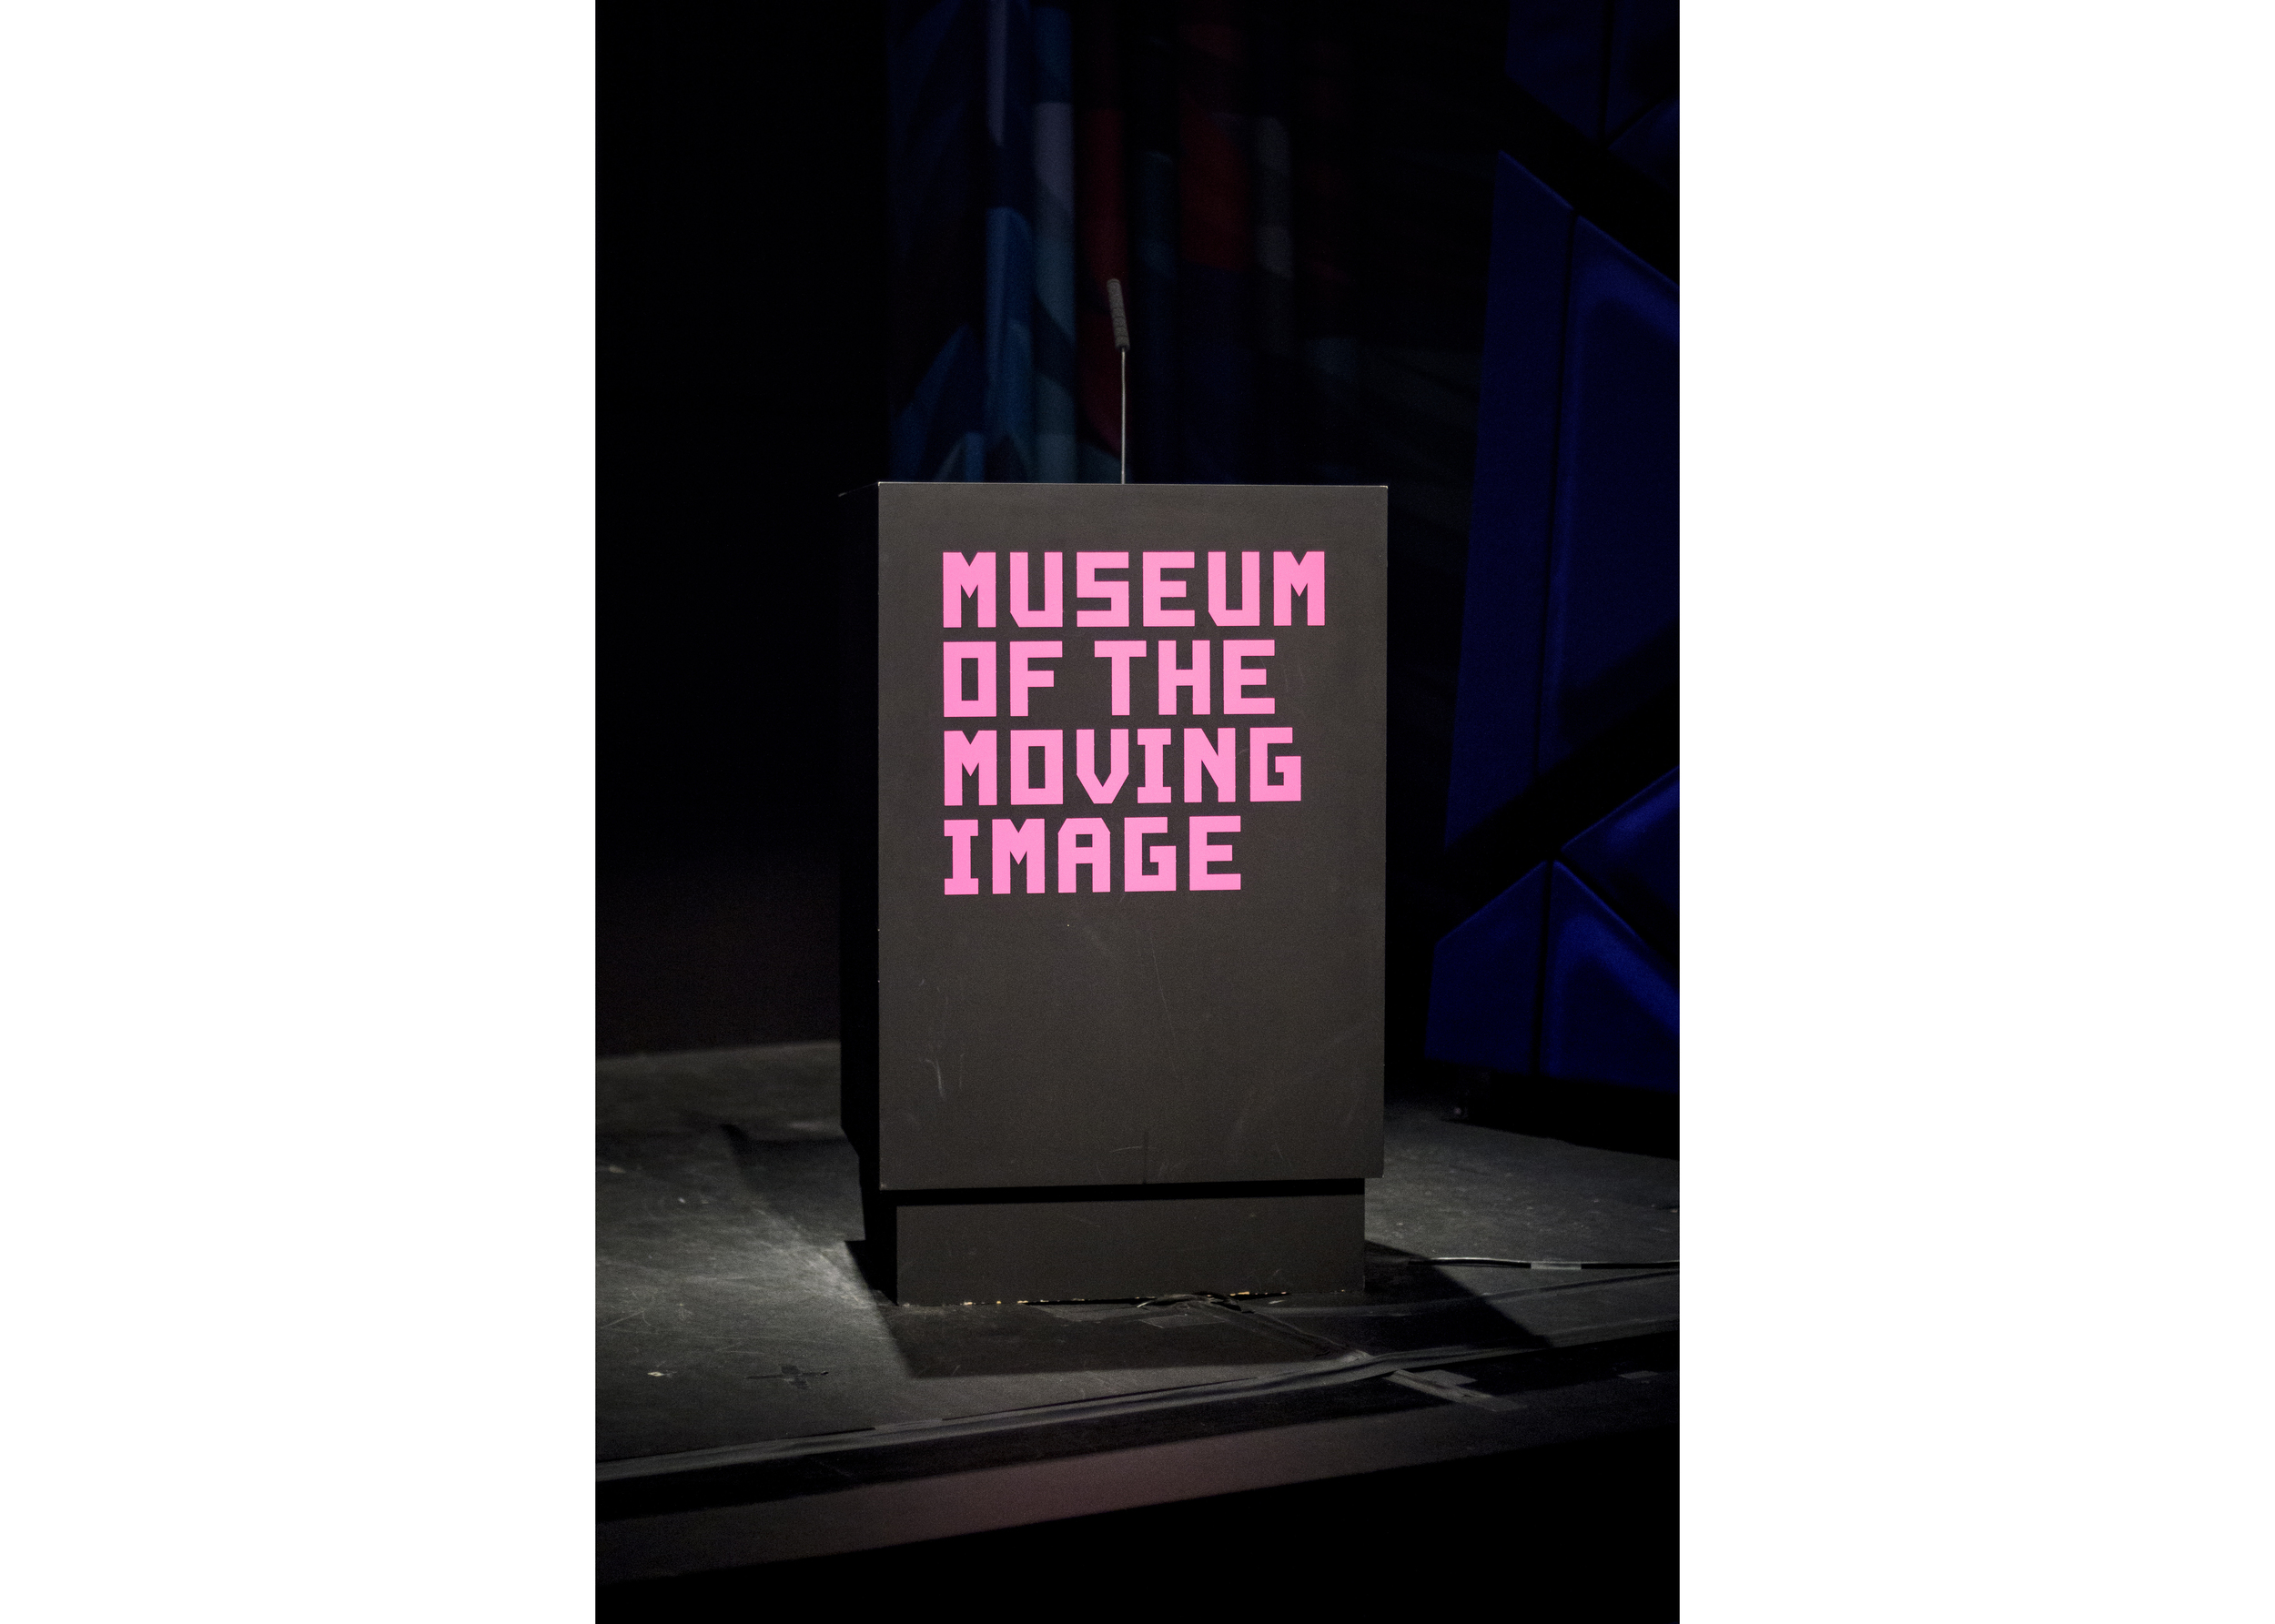 THE ROSTER_ MUSEUM OF THE MOVING IMAGE